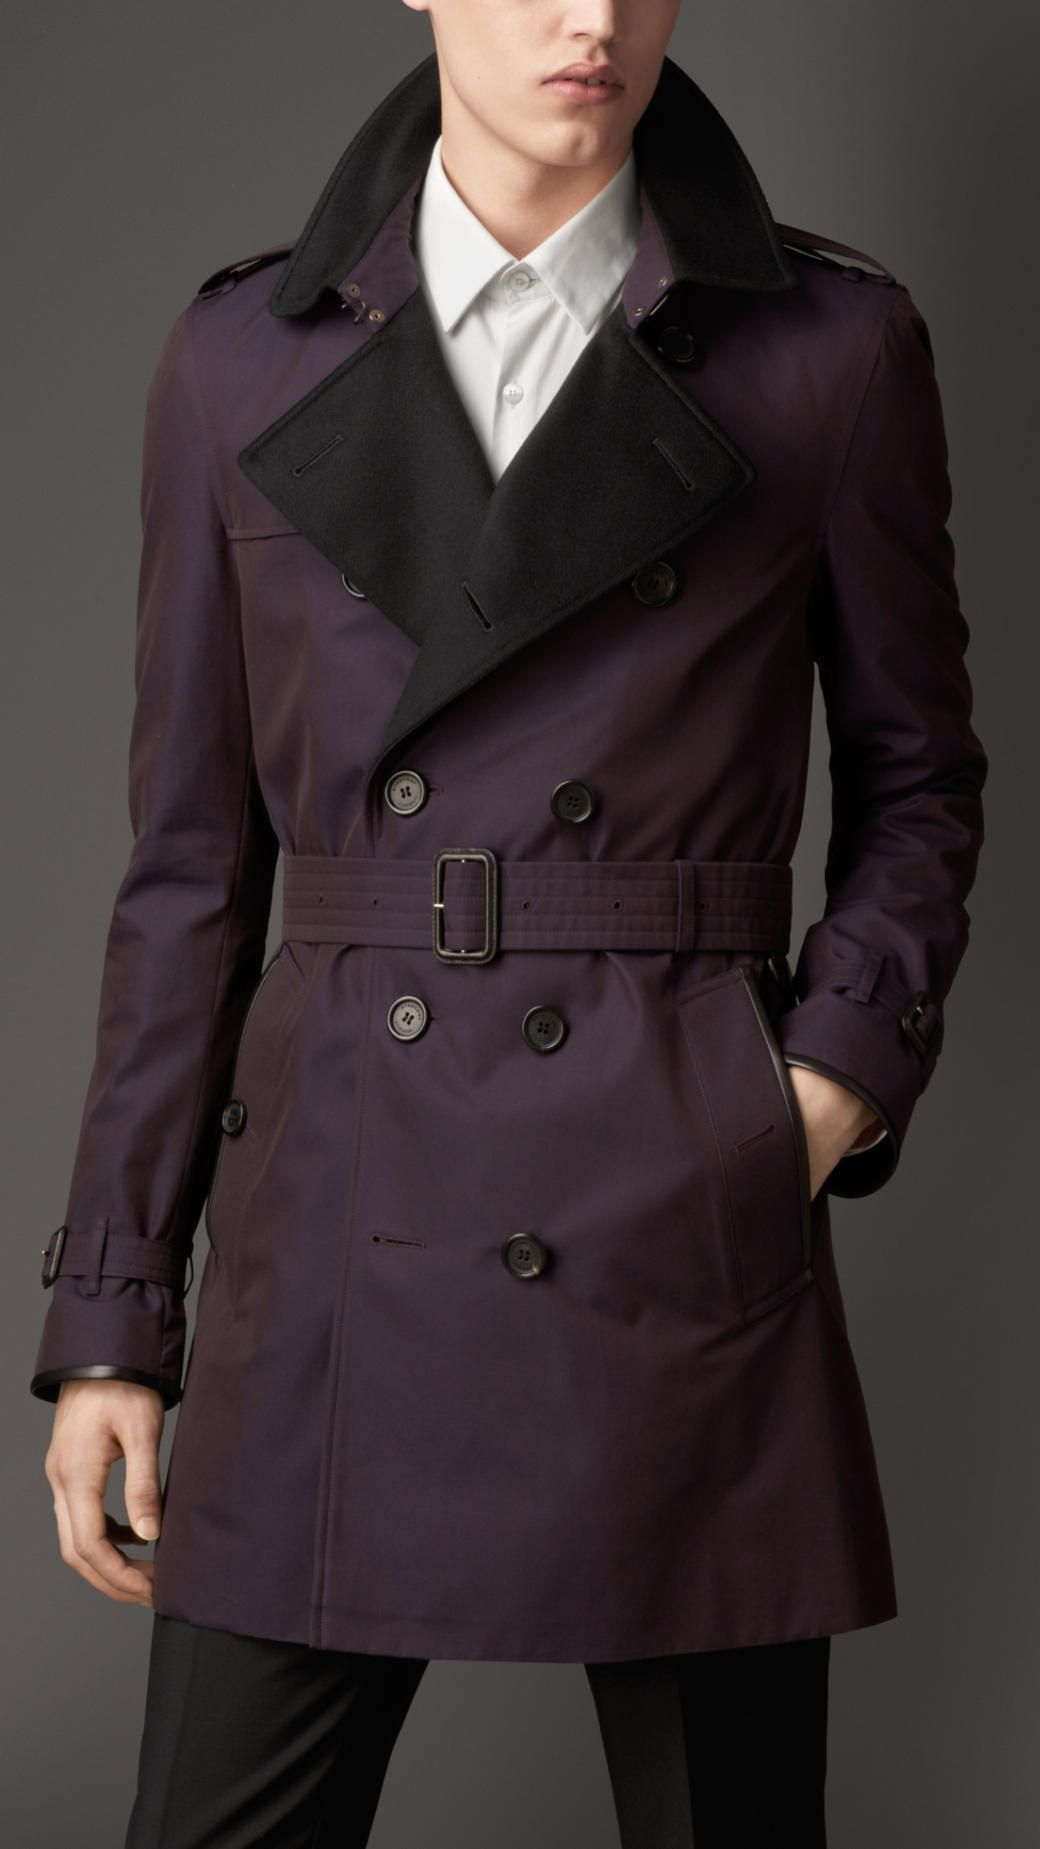 Trench Coats for Men   Burberry®   Male Dress   Pinterest   Manteau ... 708b2e1890cc